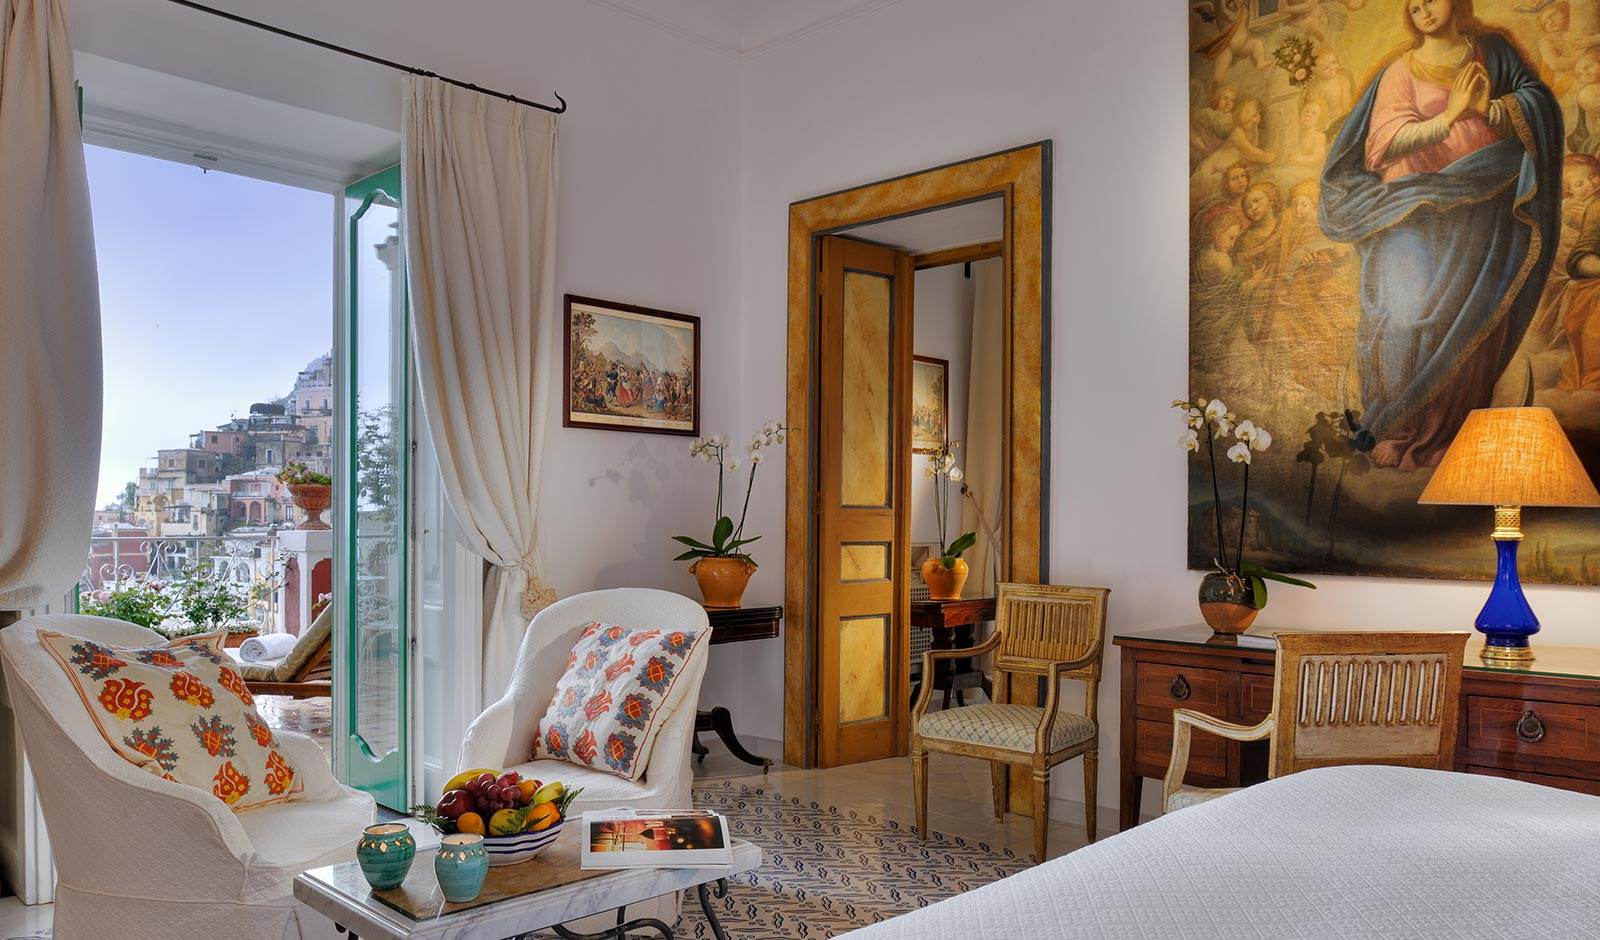 Deluxe room and Suite with sea view - Le Sirenuse luxury hotel in Positano (Amalfi Coast, Italy)